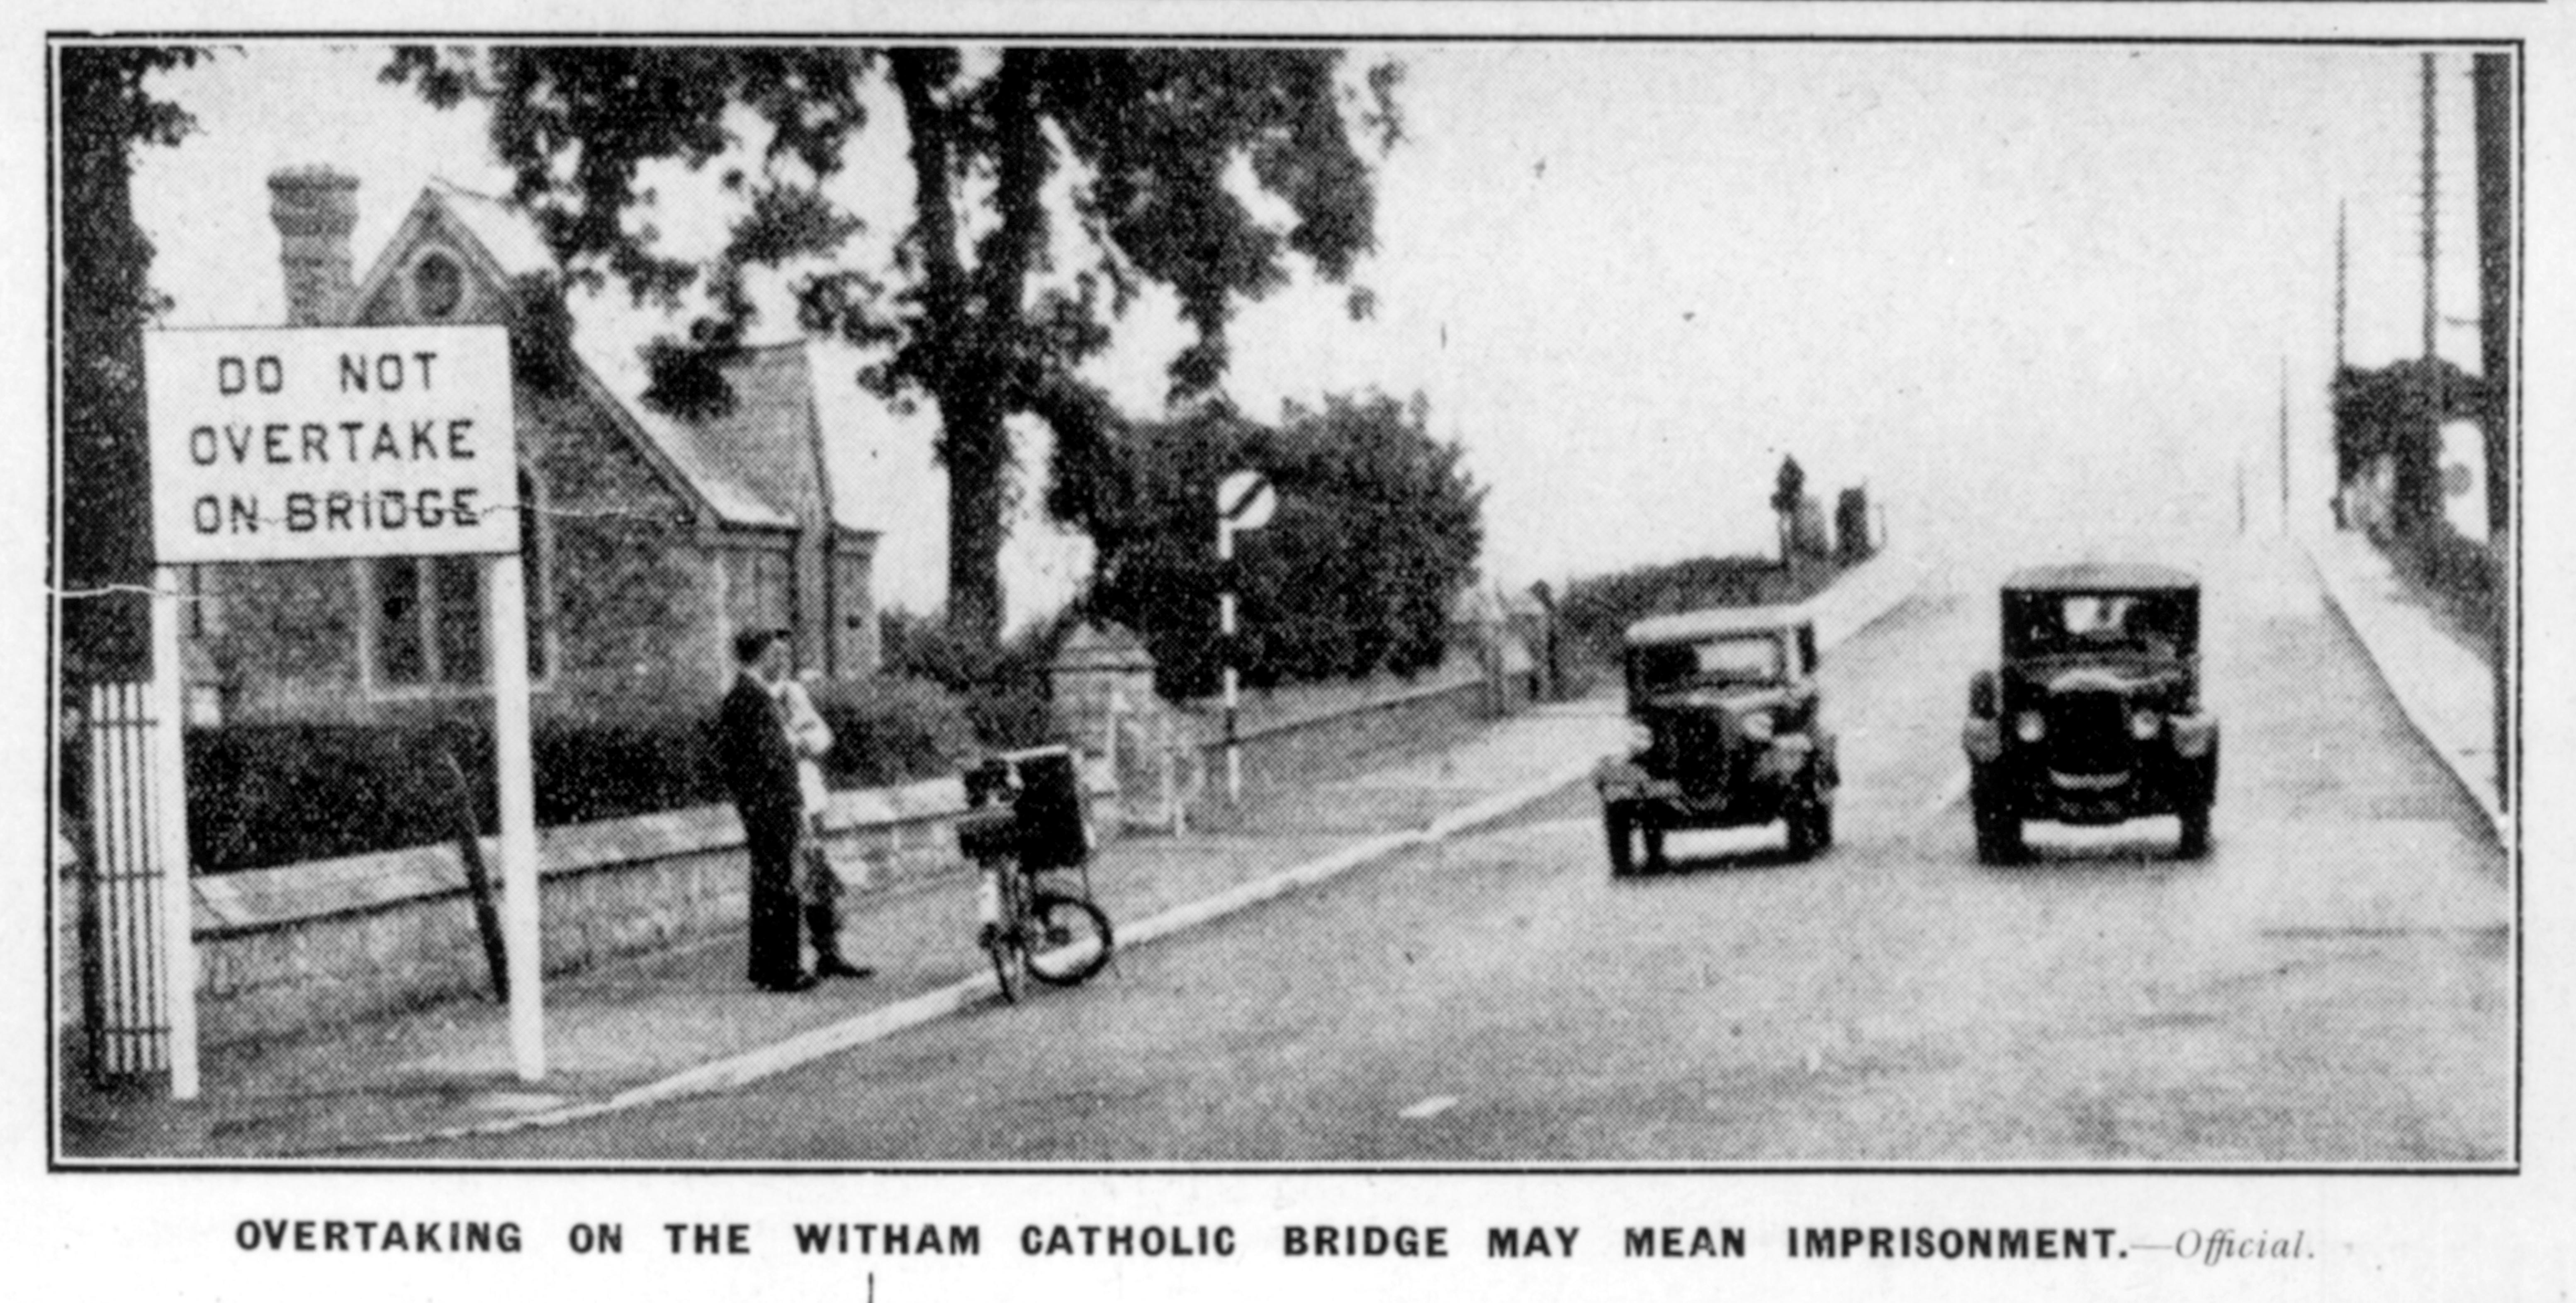 Janet Gyford Page 36 The History Of Witham Essex Diagrams Dragon School Motoring One My Favourite Photos Traffic Problems Were Among Main Reasons For Needing